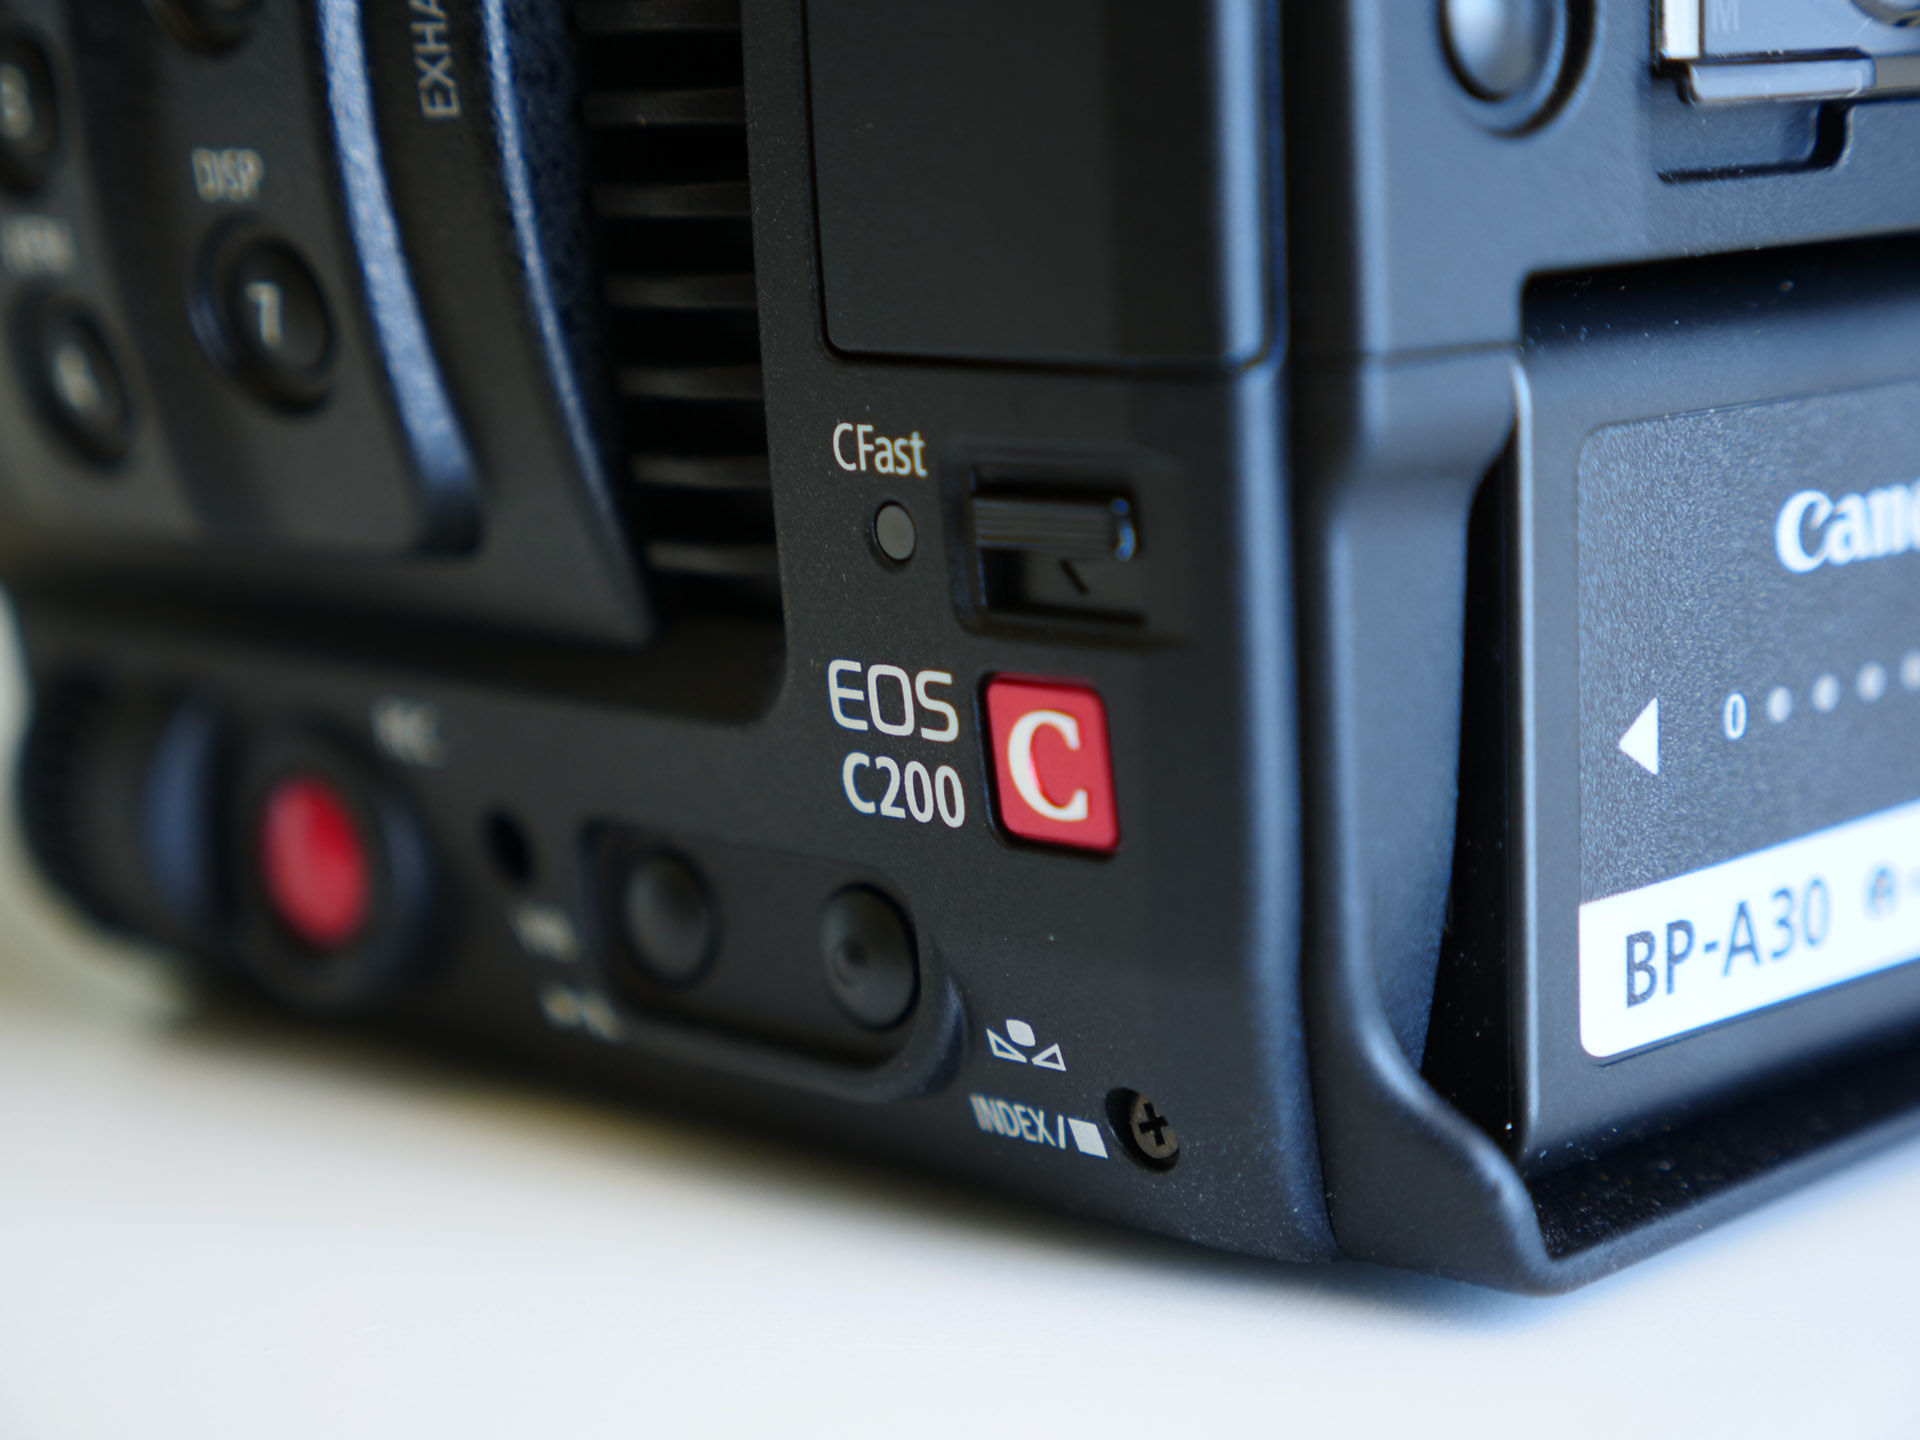 CANOS C200 VS C300 MARK II ¿CUÁL ELEGIR? - KBN Next MediaKBN Next Media